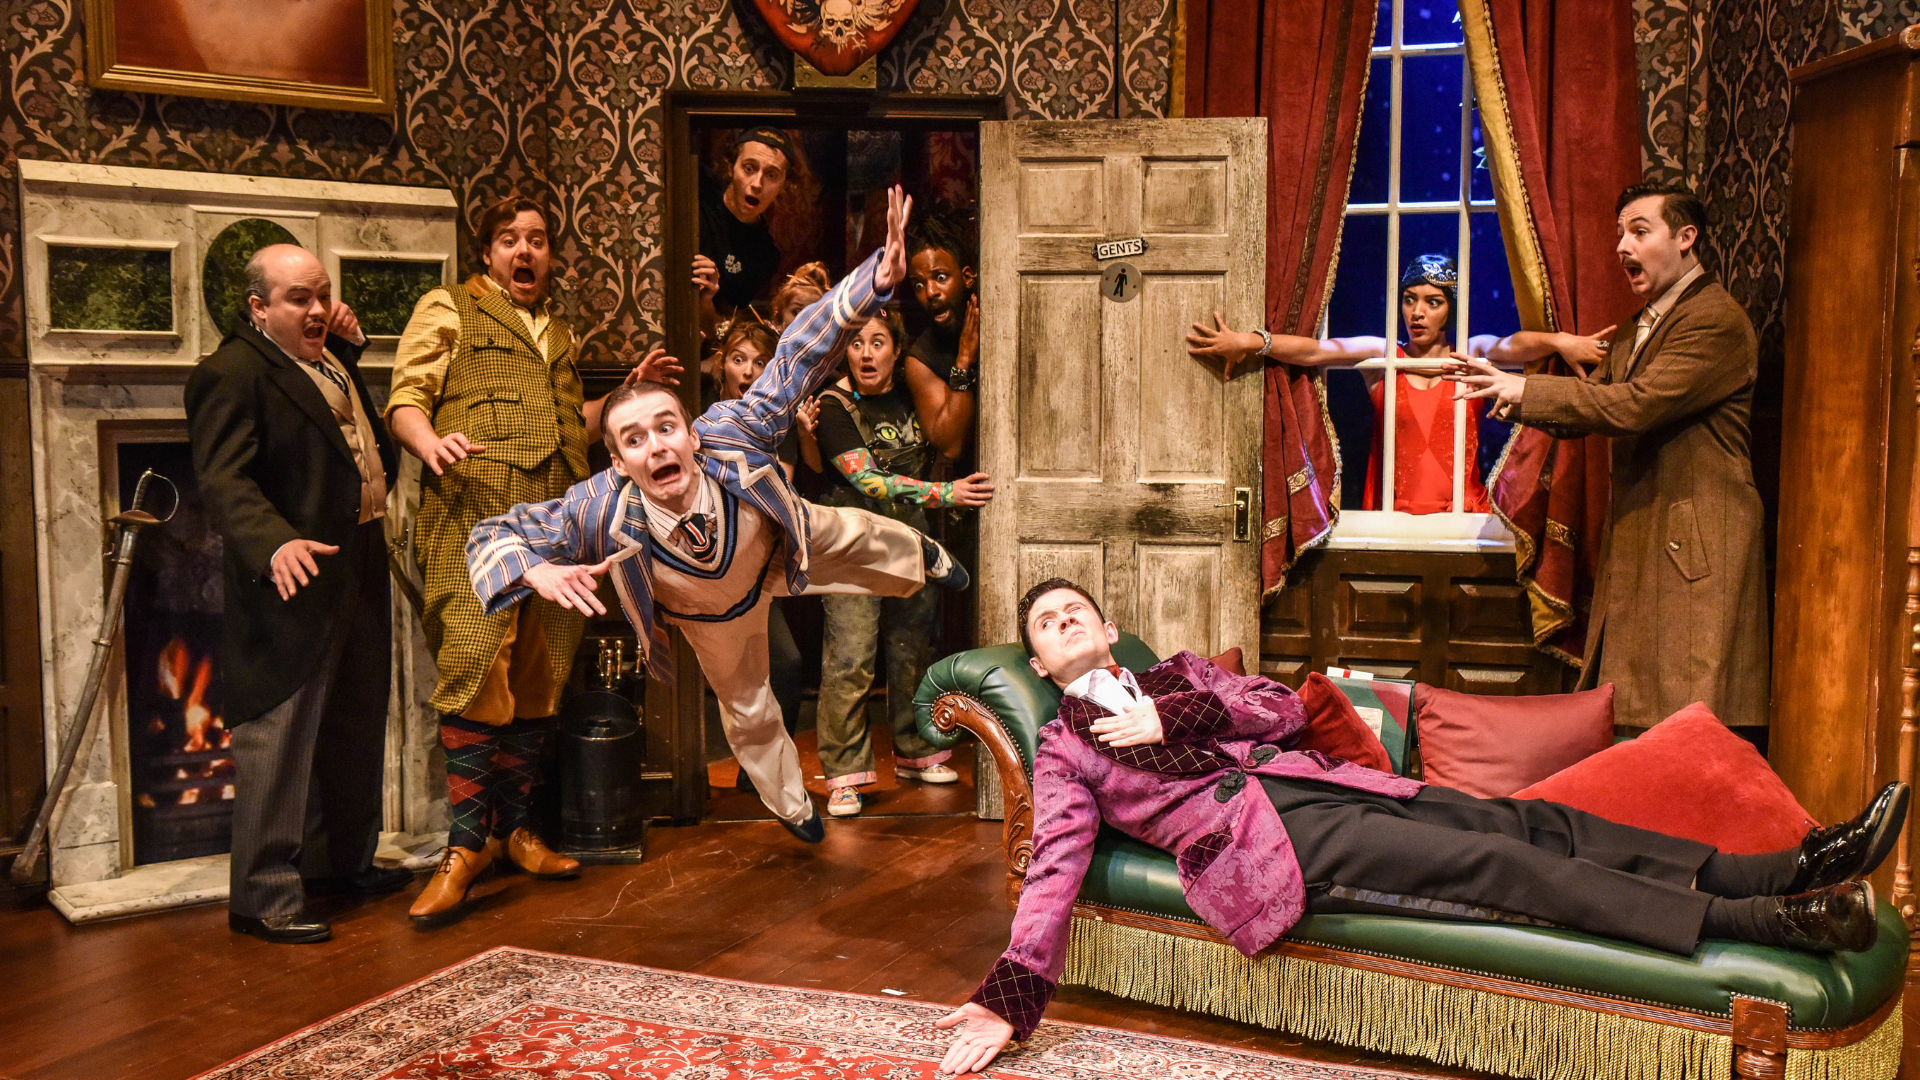 The Play That Goes Wrong Production Shot: Jonathan (Seán Carey) is laid down on a chaise longue with one eye open. Max (Tom Babbage) has burst into the scene falling through a door. Everyone else (9 cast members) are towards the back of the scene and looking scared as Max is falling.